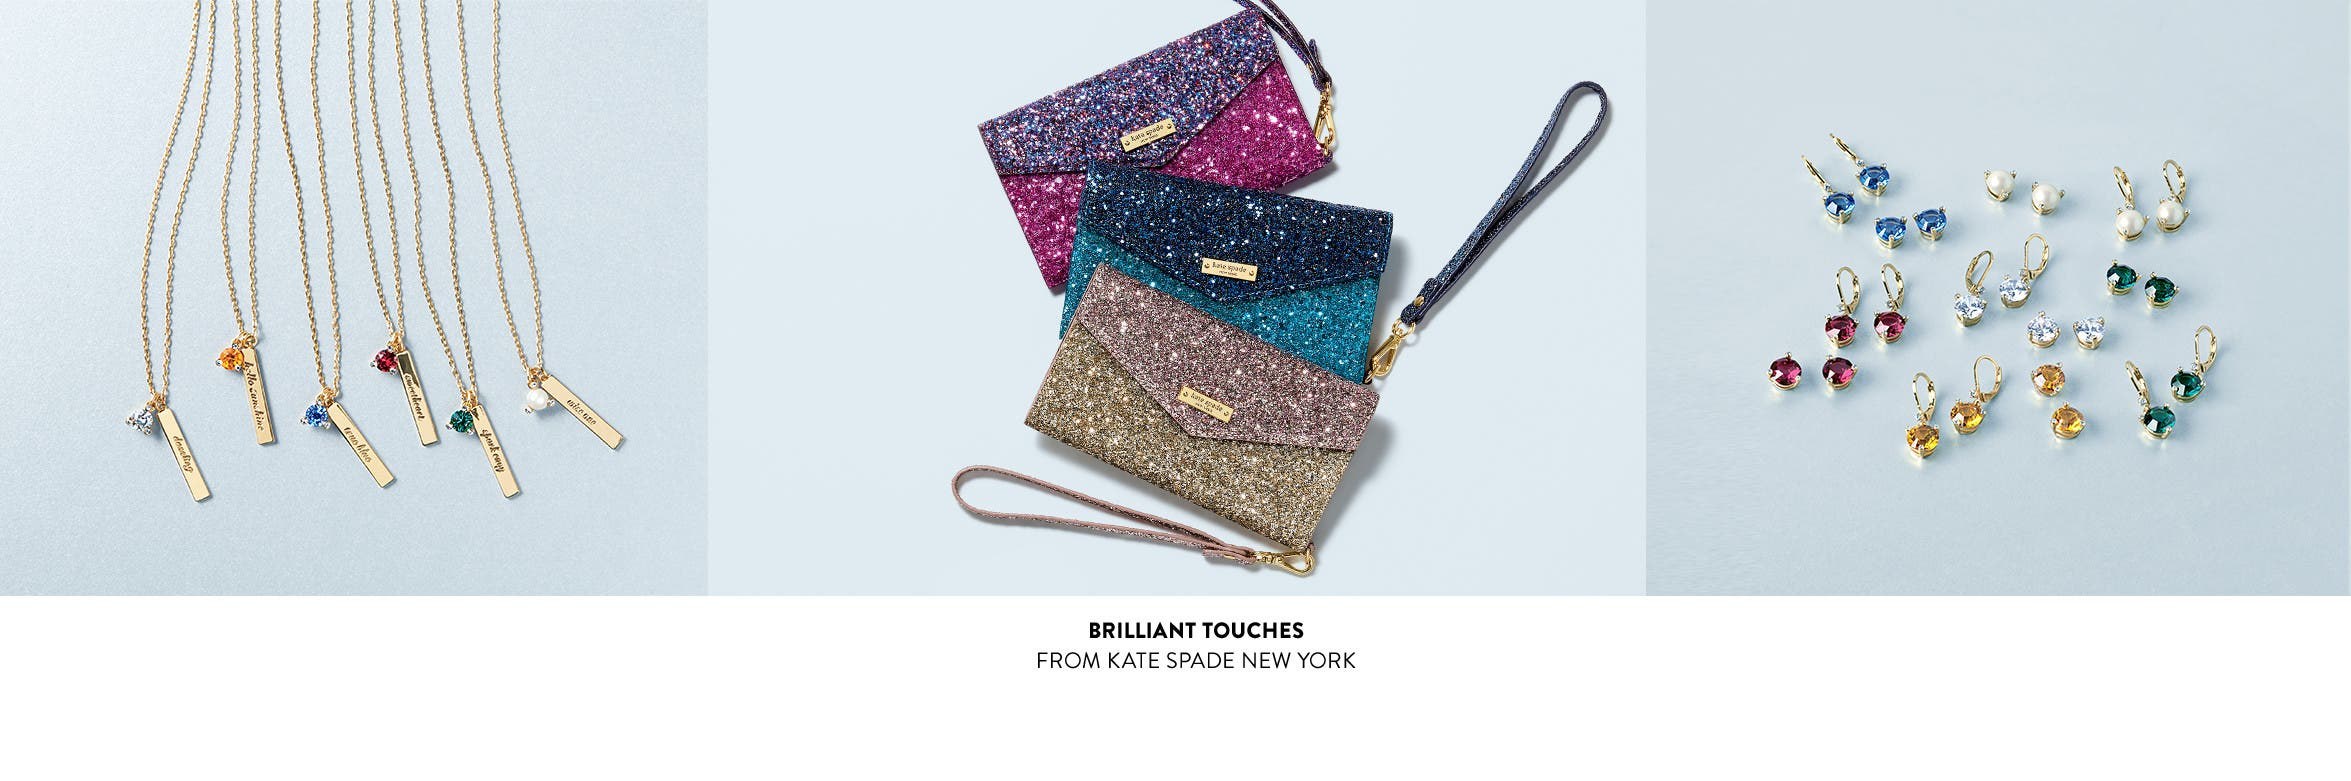 Brilliant touches from kate spade new york.